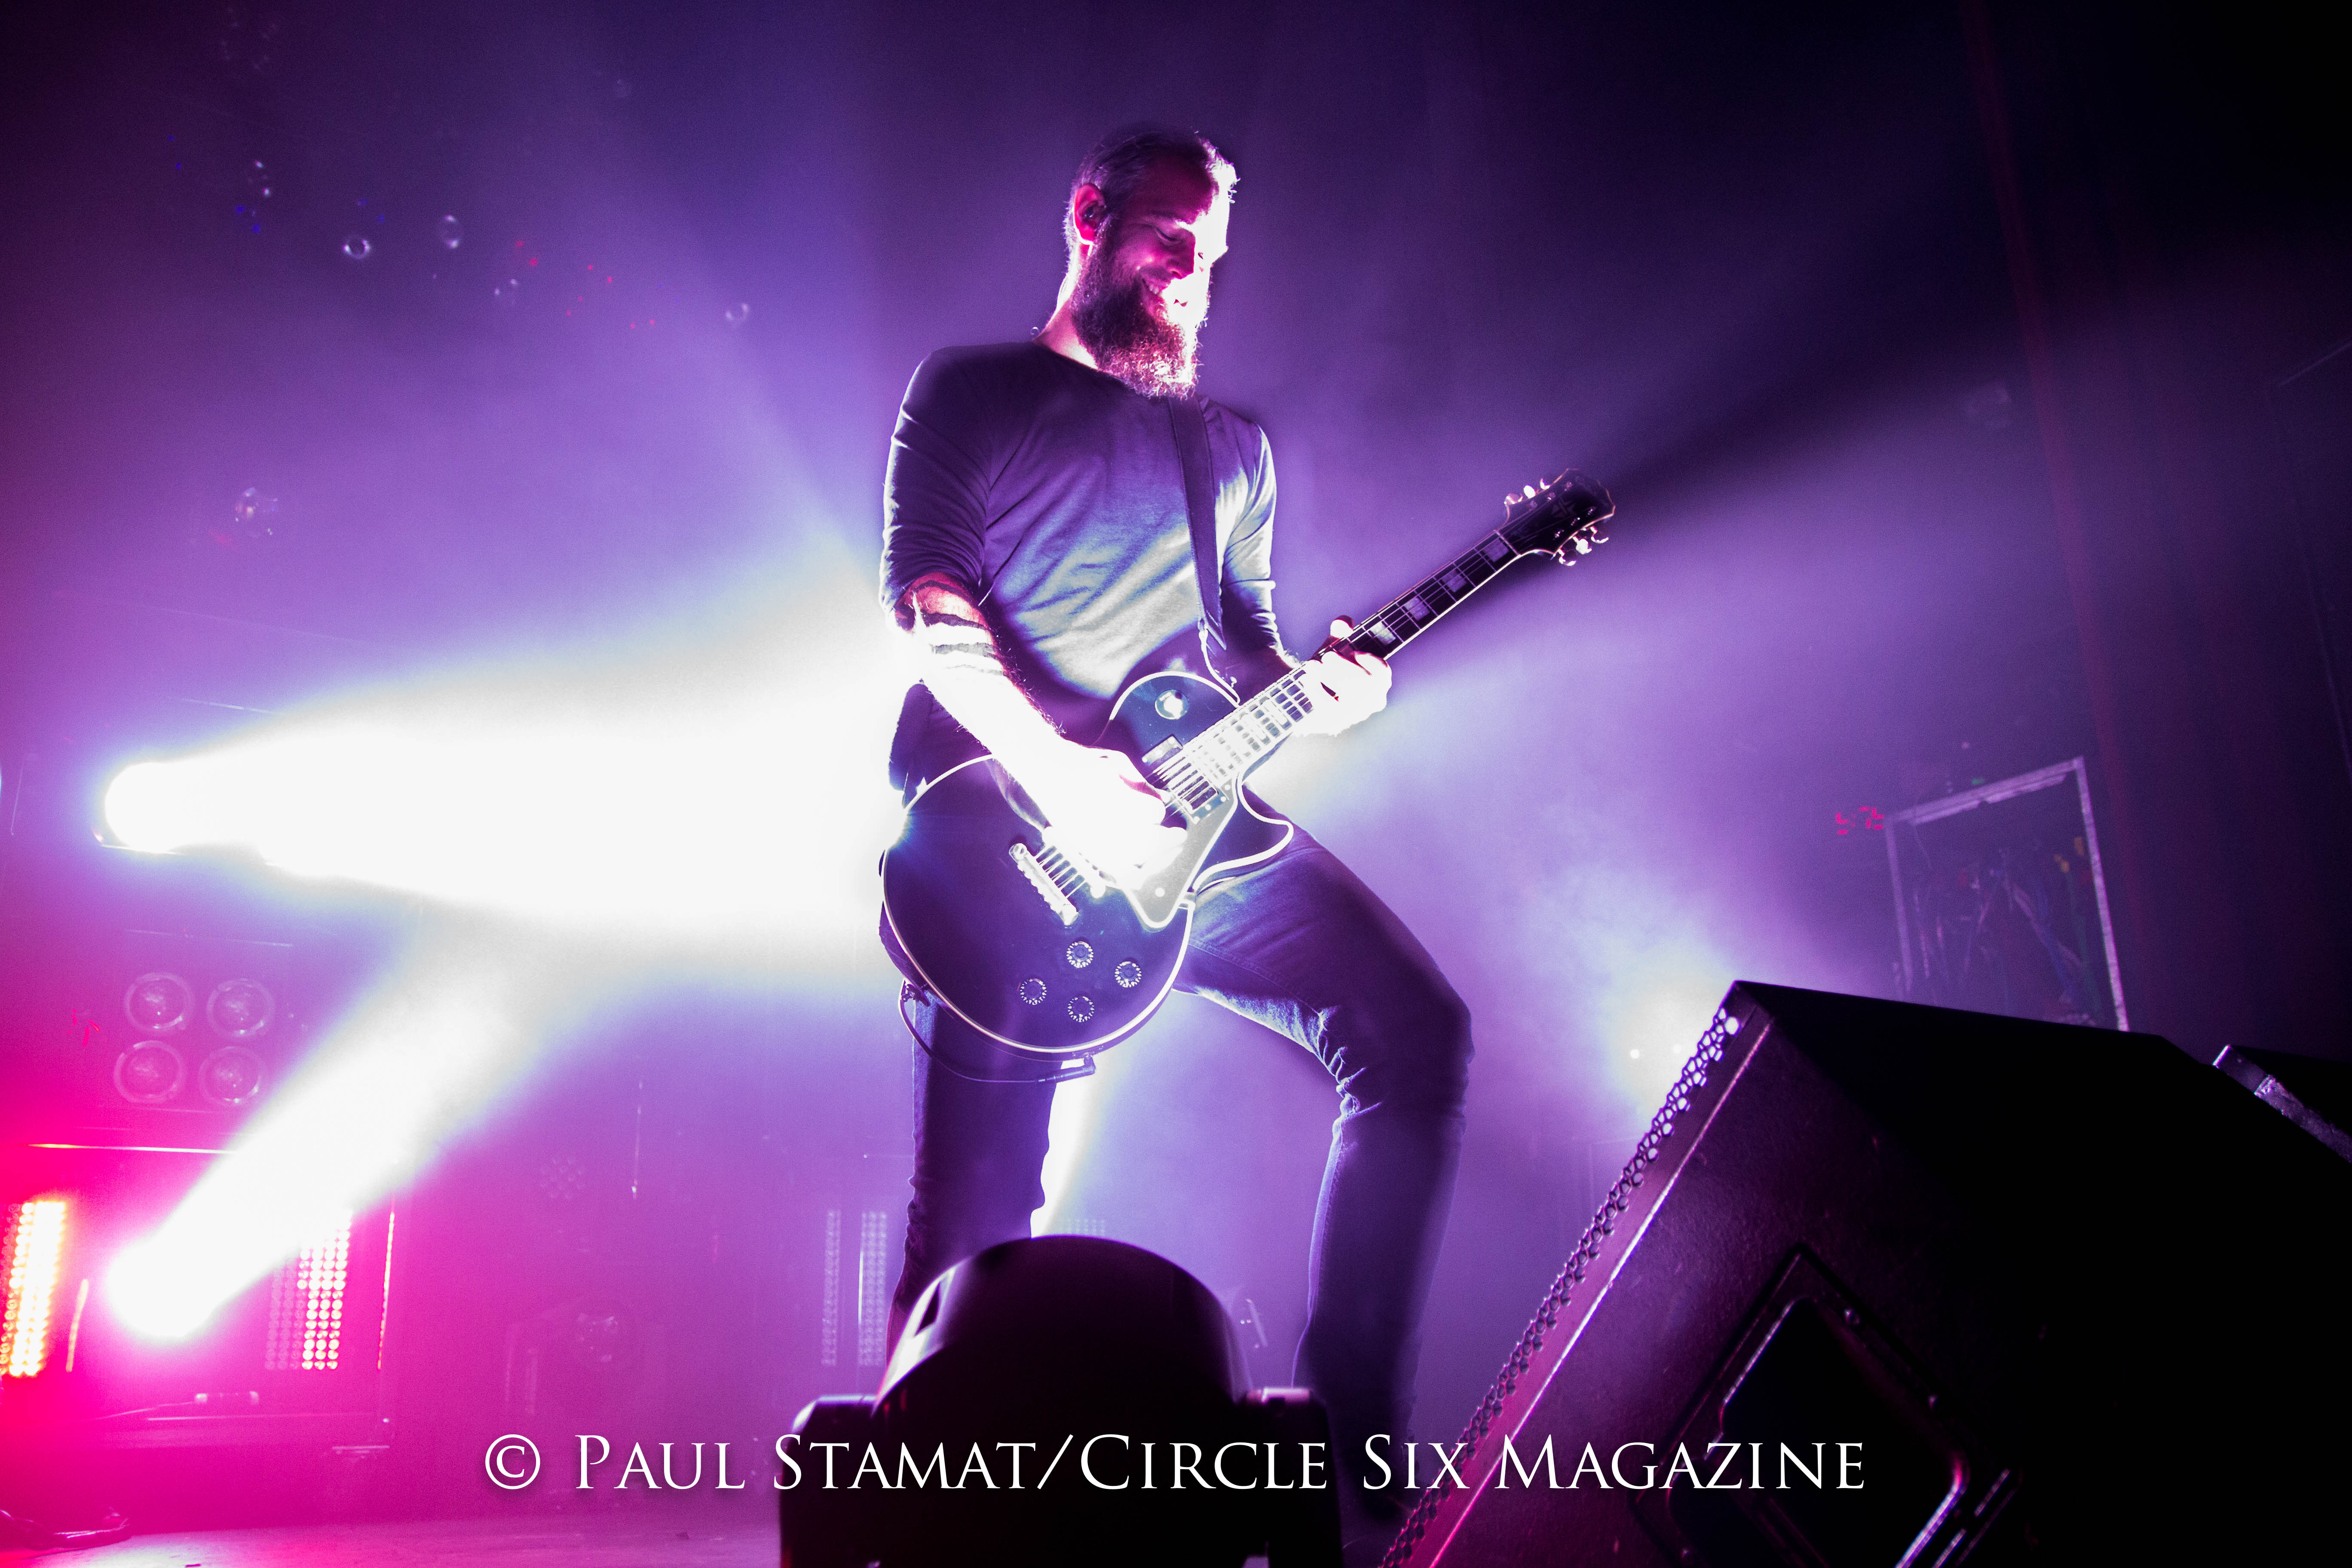 Opeth In Flames Show 2 (30 of 39)